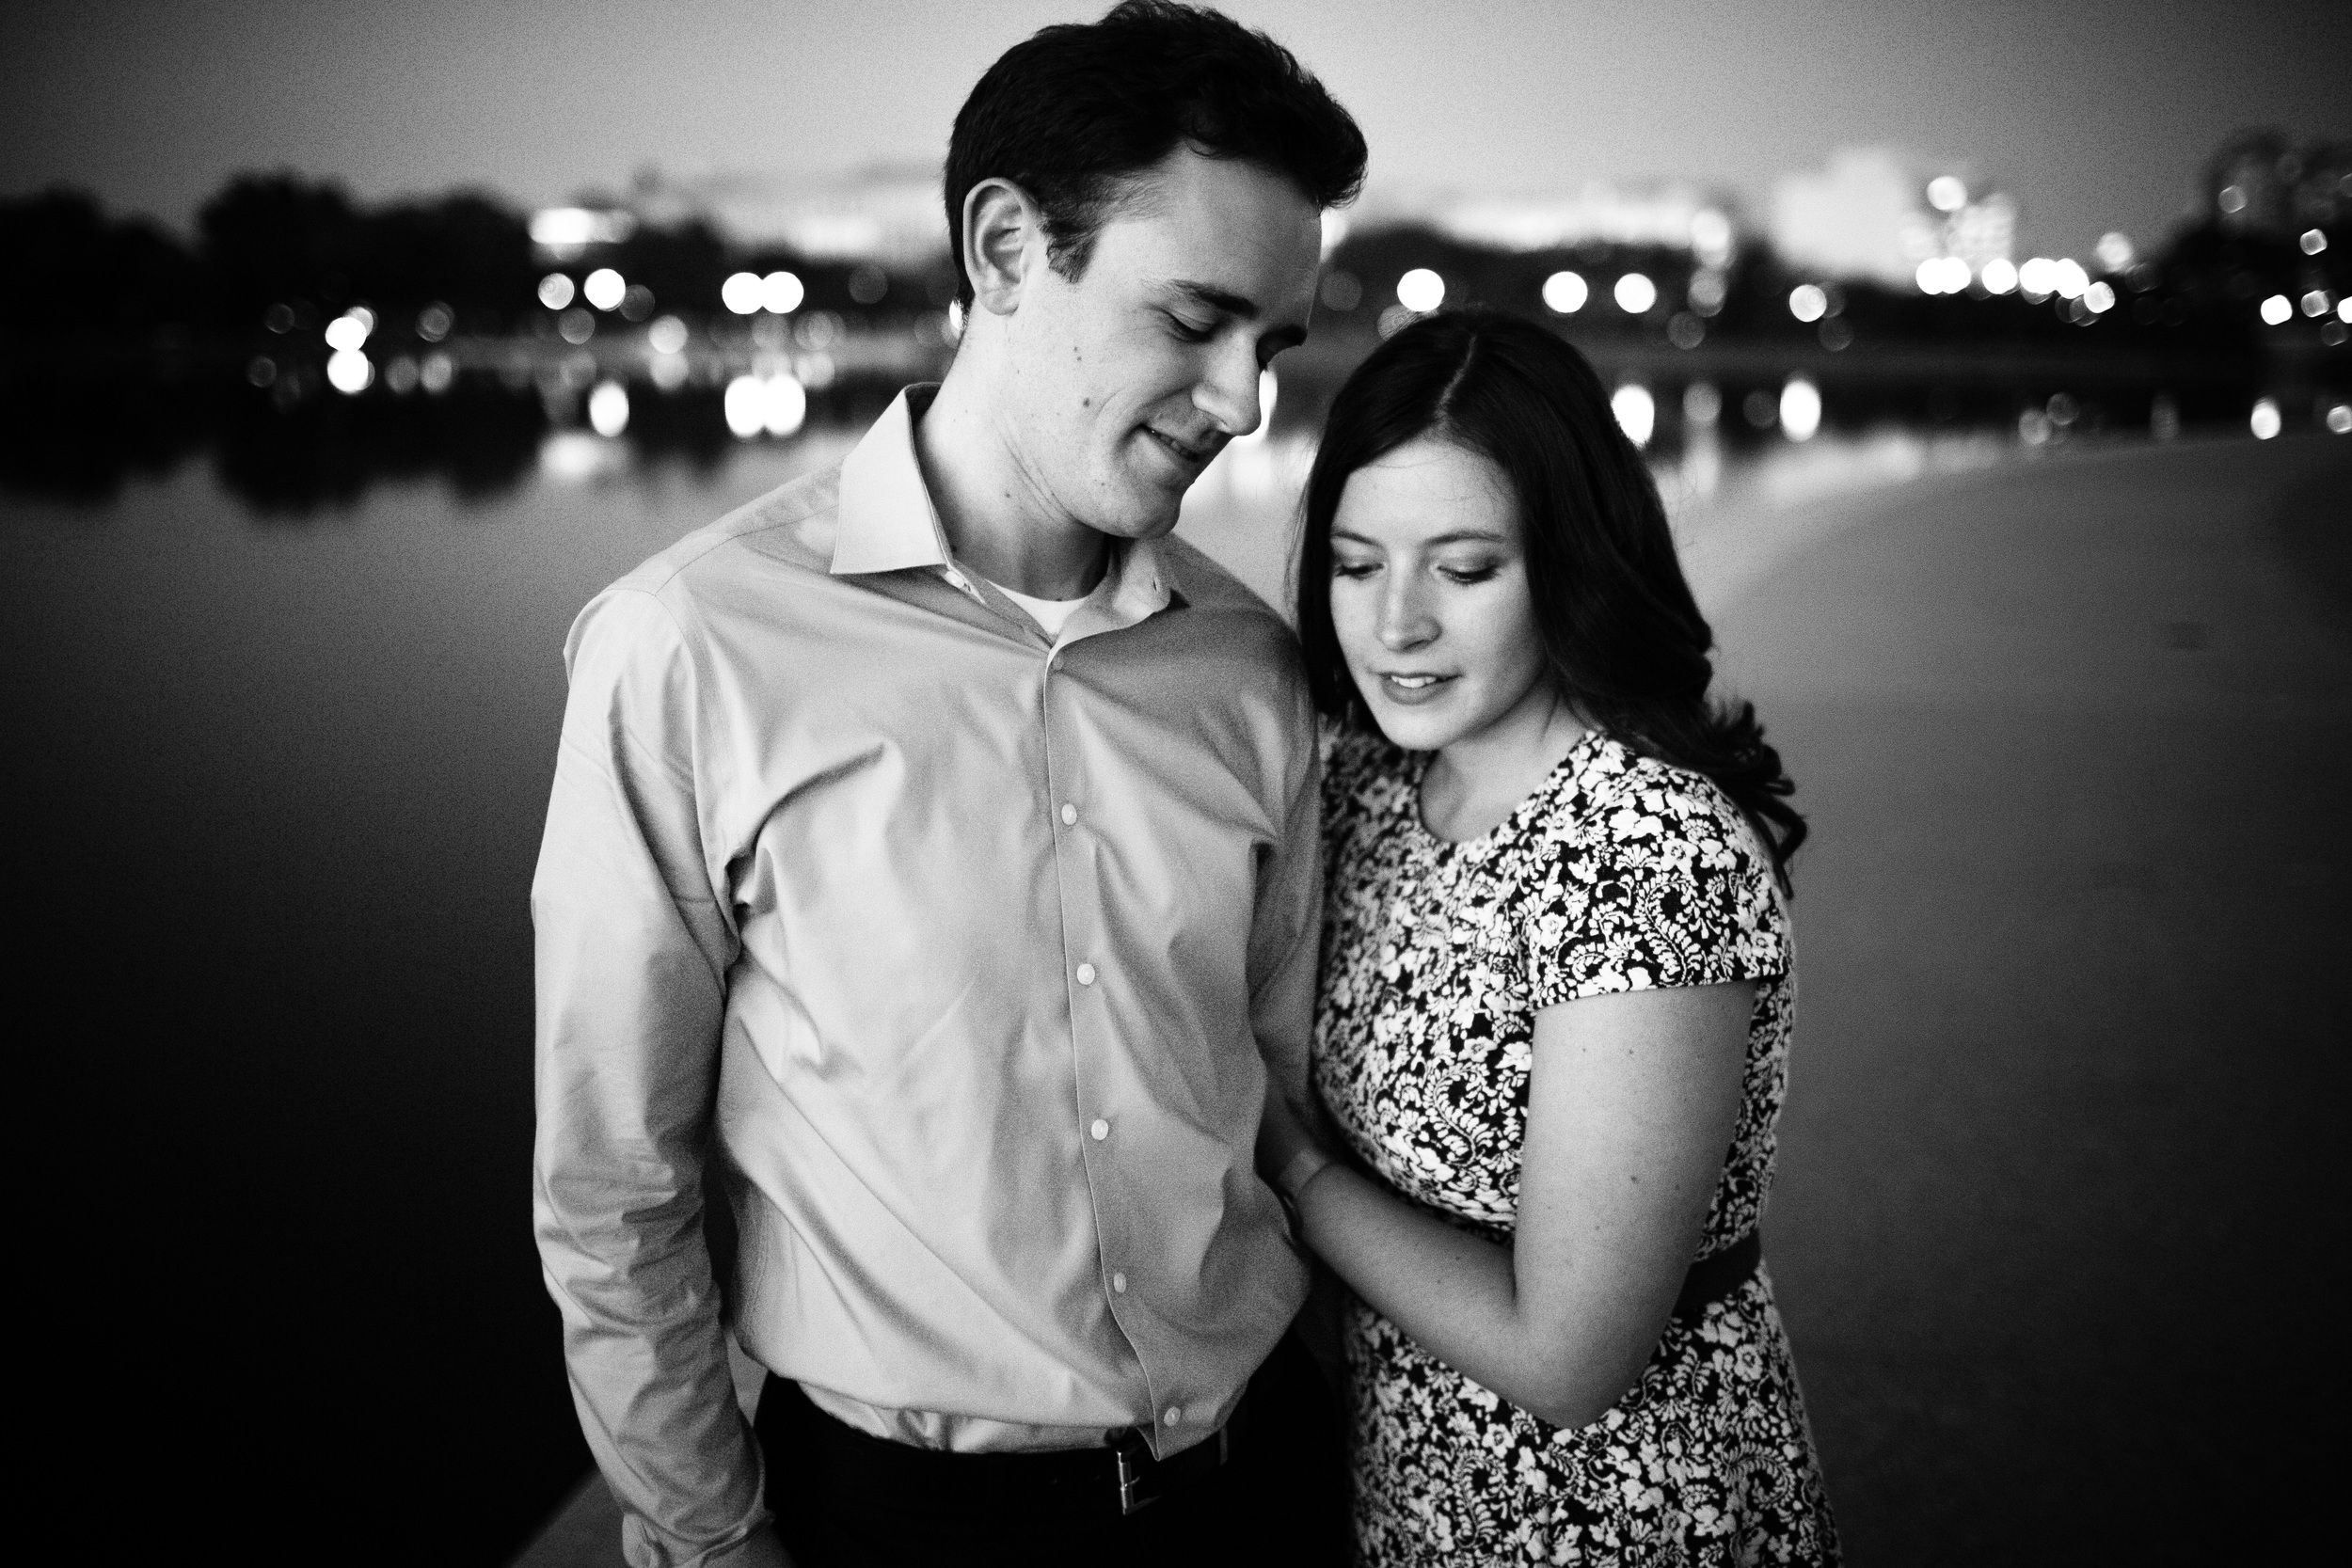 downtown engagement photos in washington, dc bride and groom